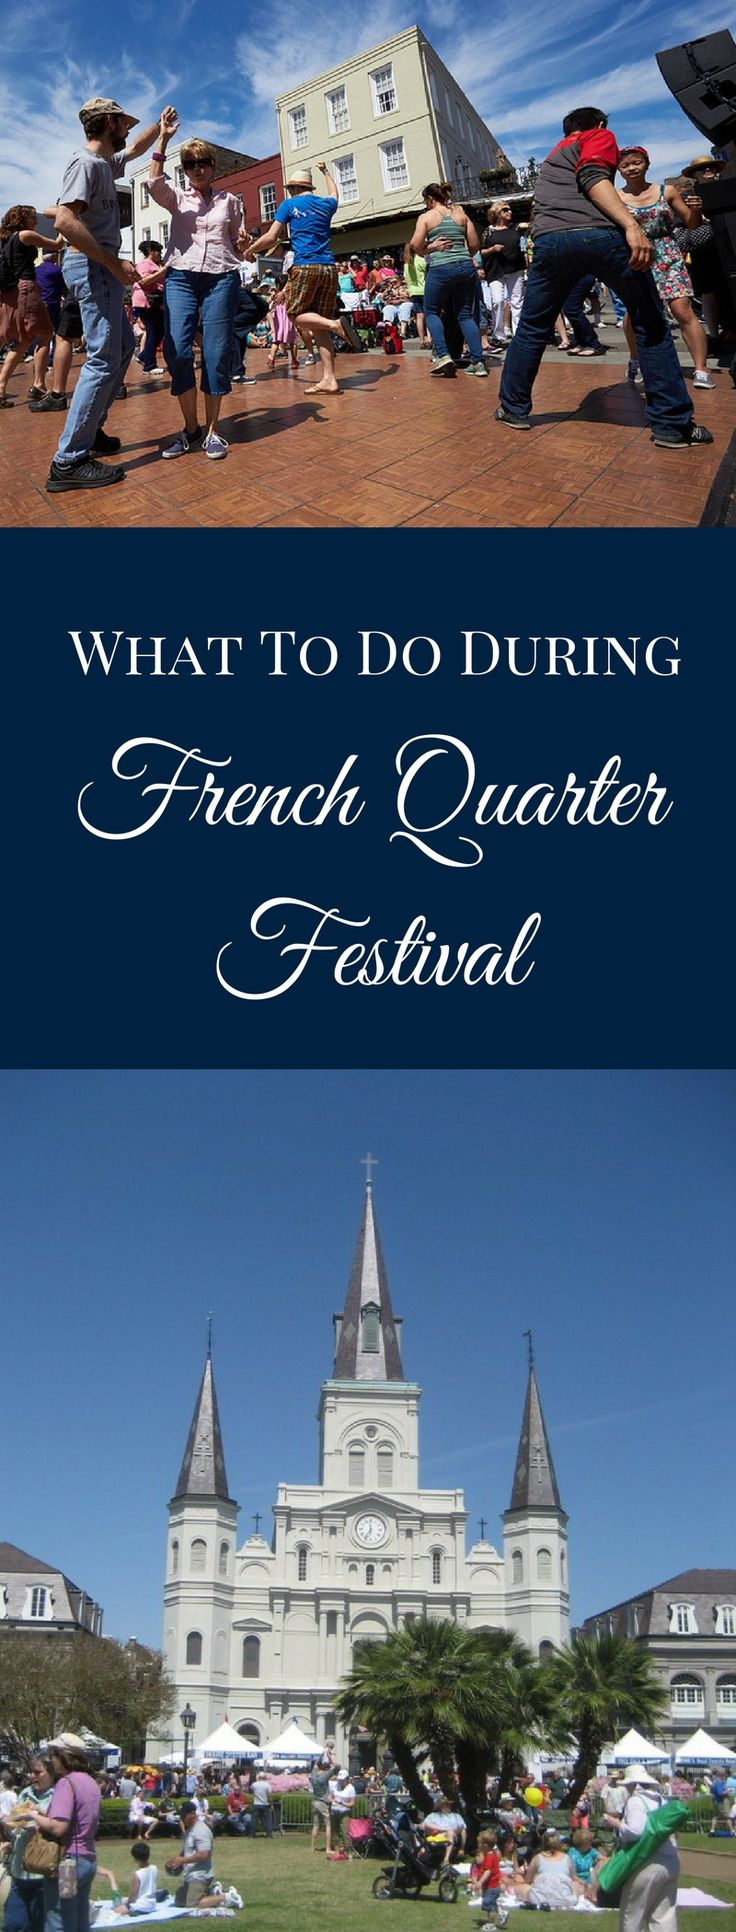 French Quarter Fest features so many musicians, food vendors and extra activities that it is impossible to see everything, but we have a few recommendations to make this year's French Quarter Fest a memorable event!